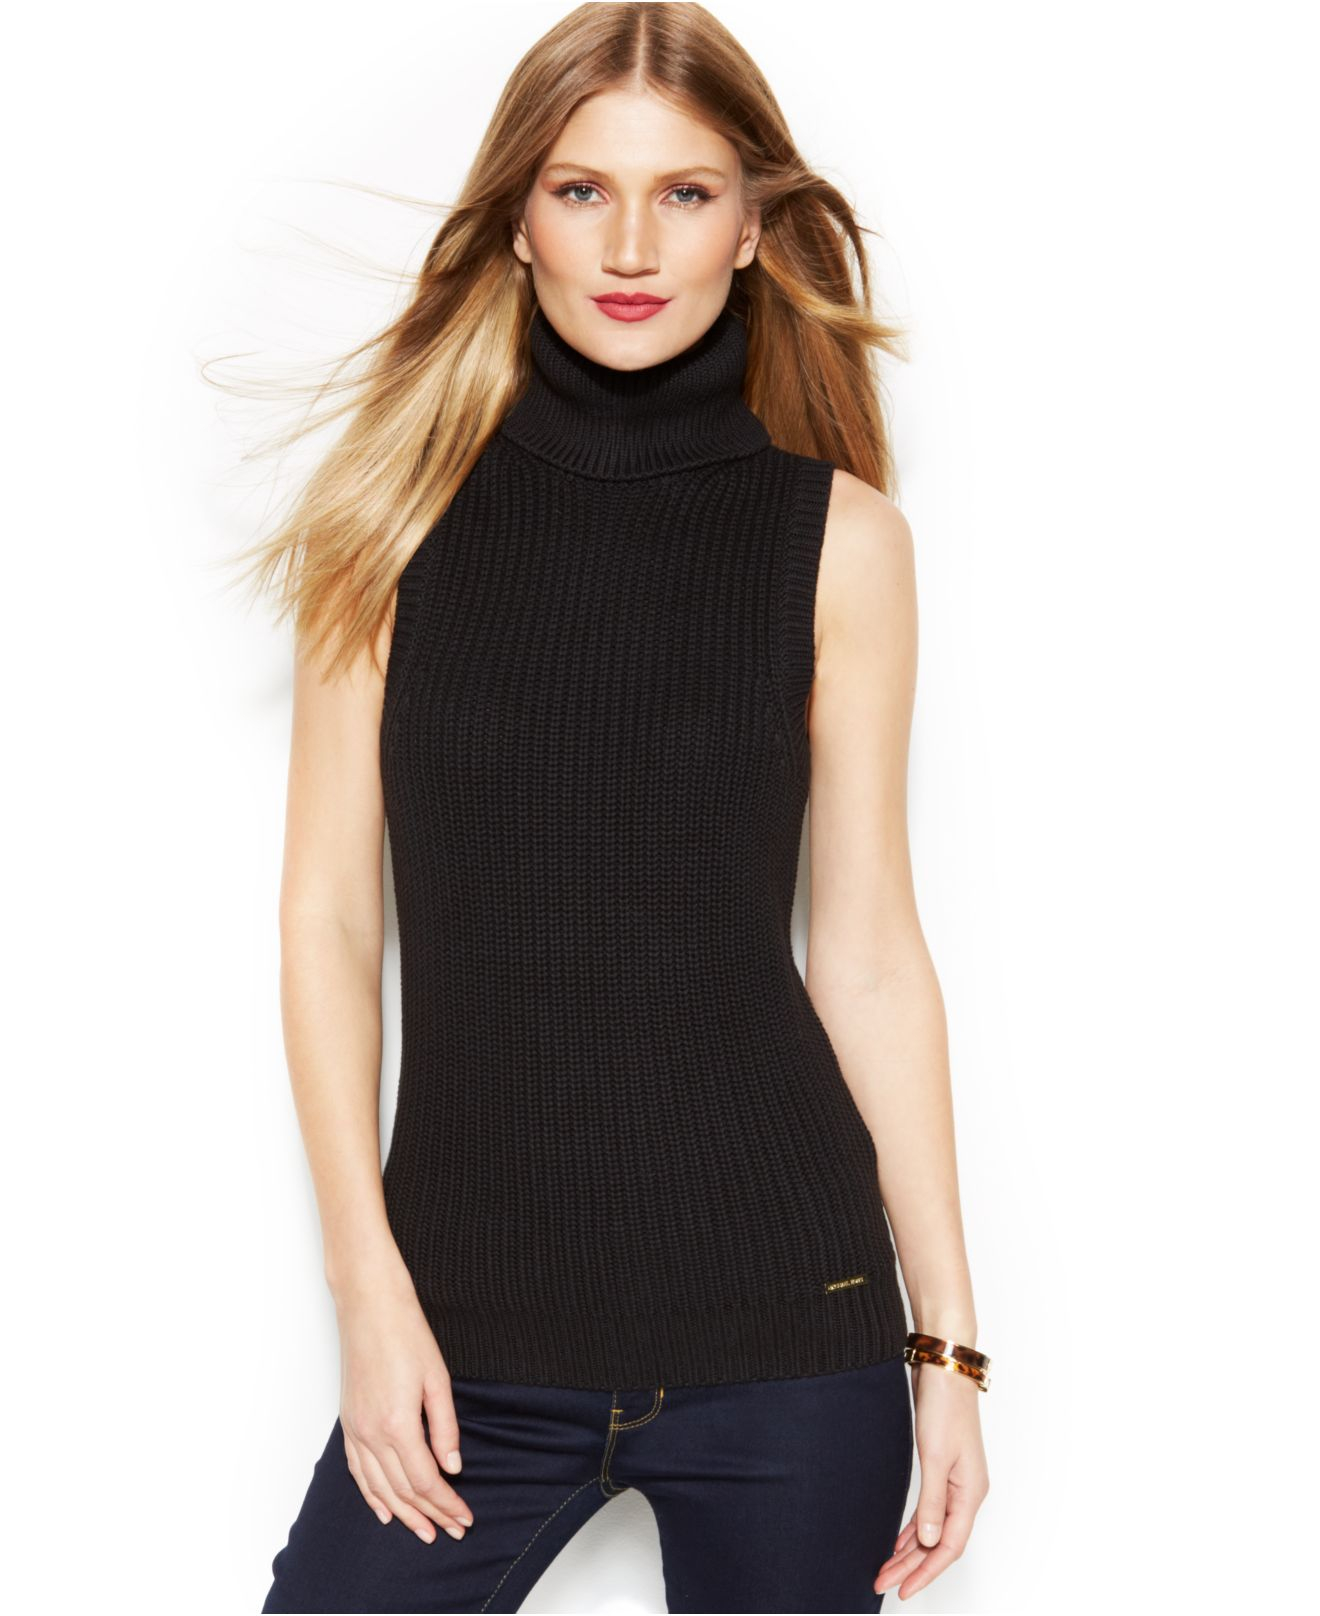 If you love a great deal, then you'll love the deals on sleeveless turtleneck tops!